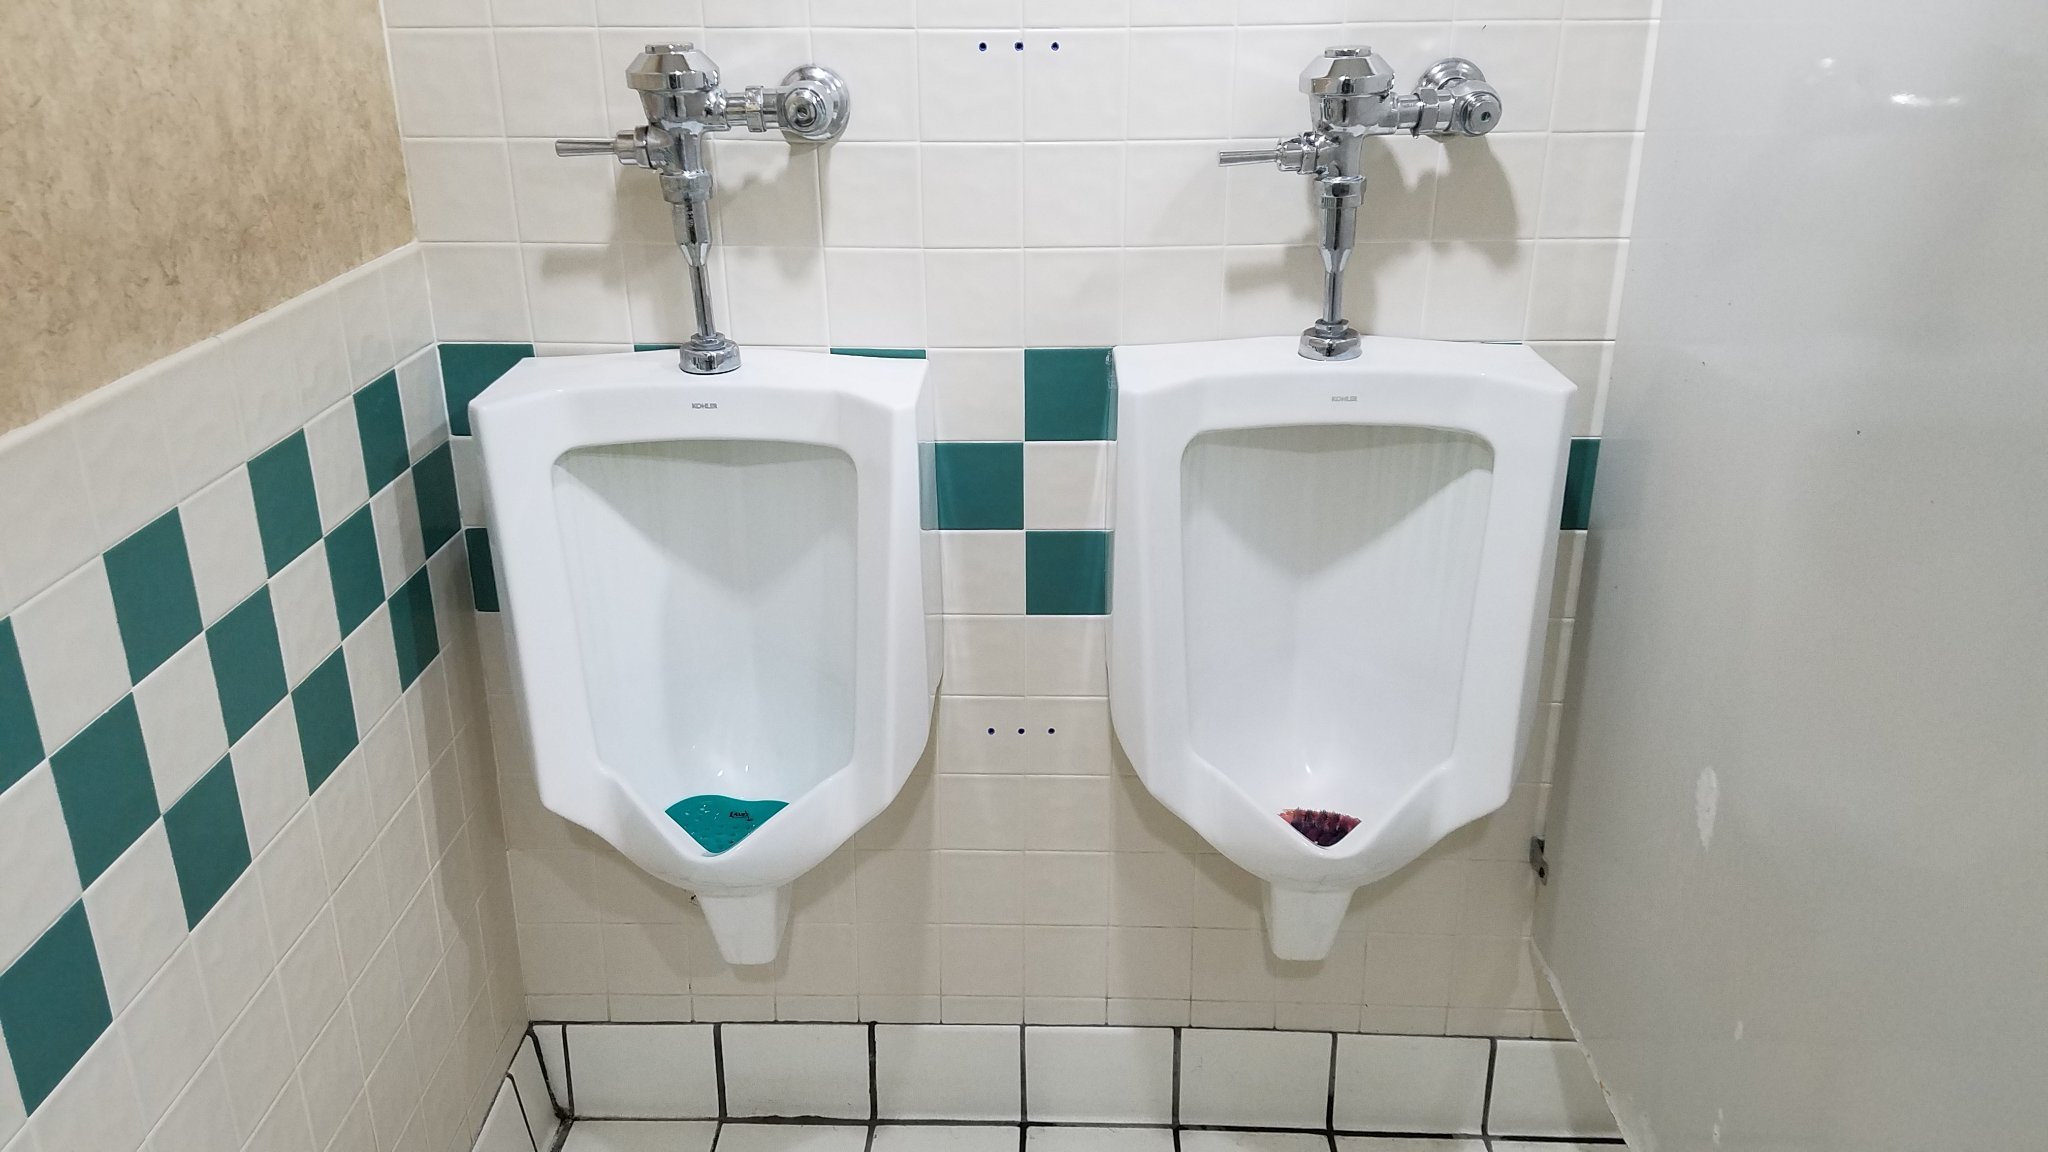 His and her urinals - meme